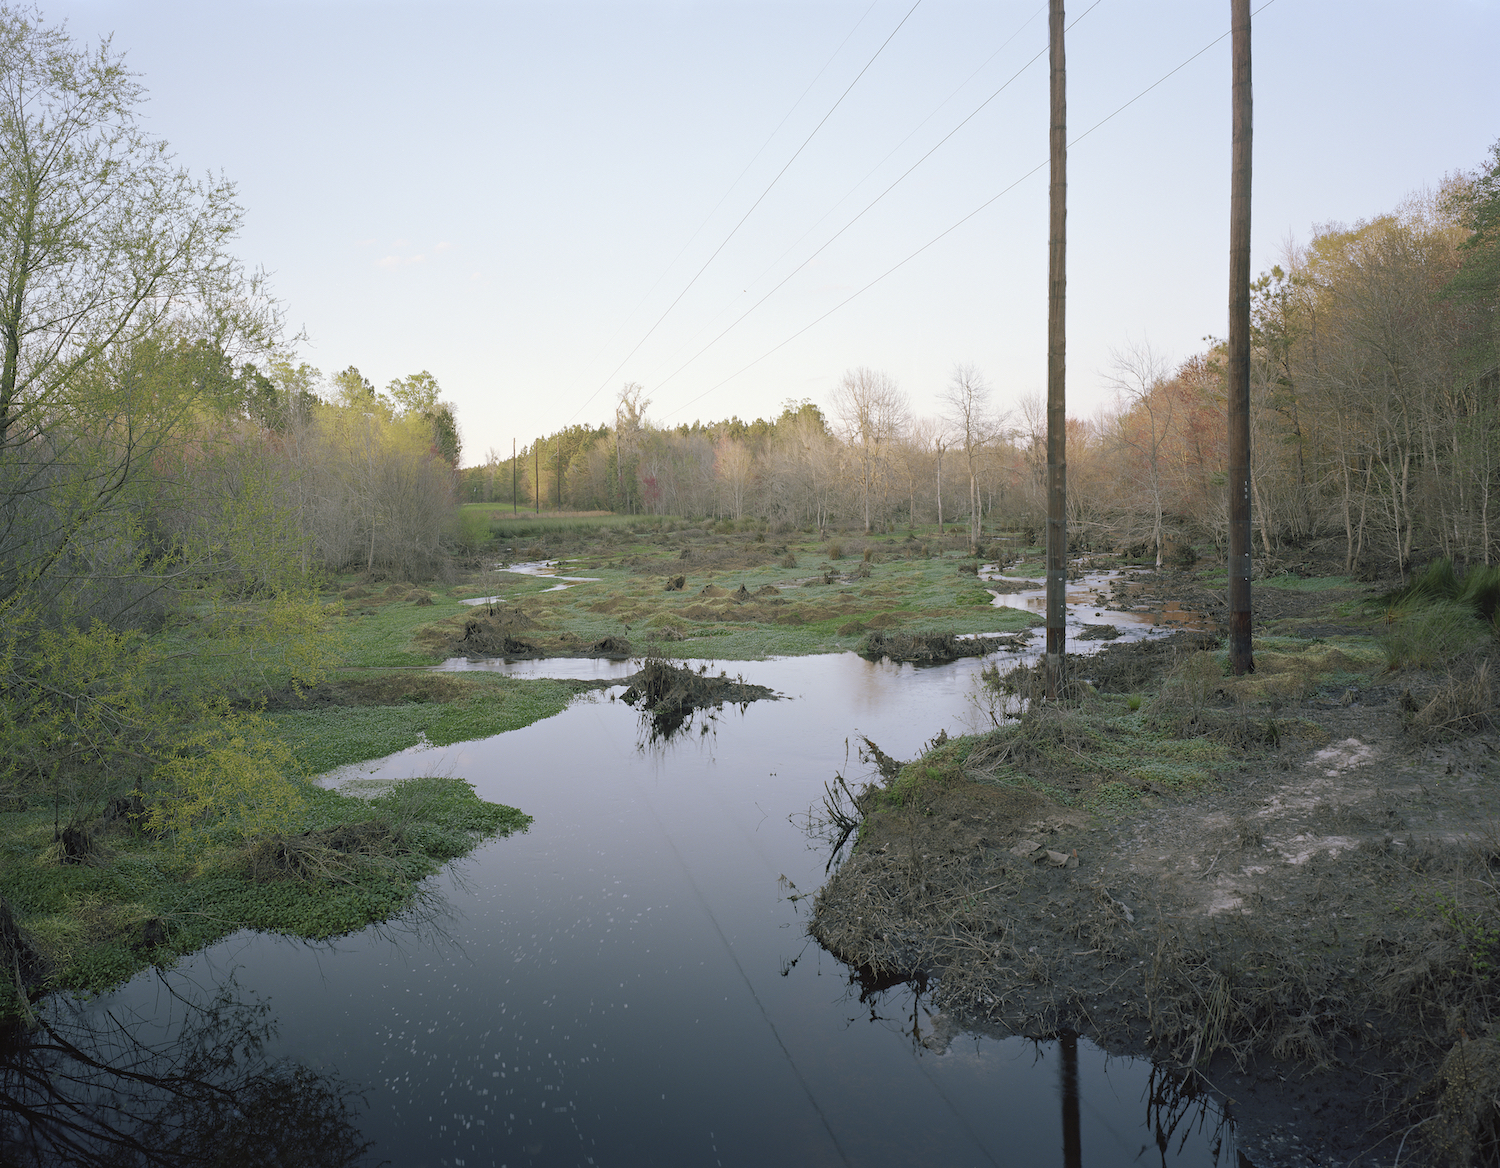 Stream just before King American Finishing Plant  Screven County